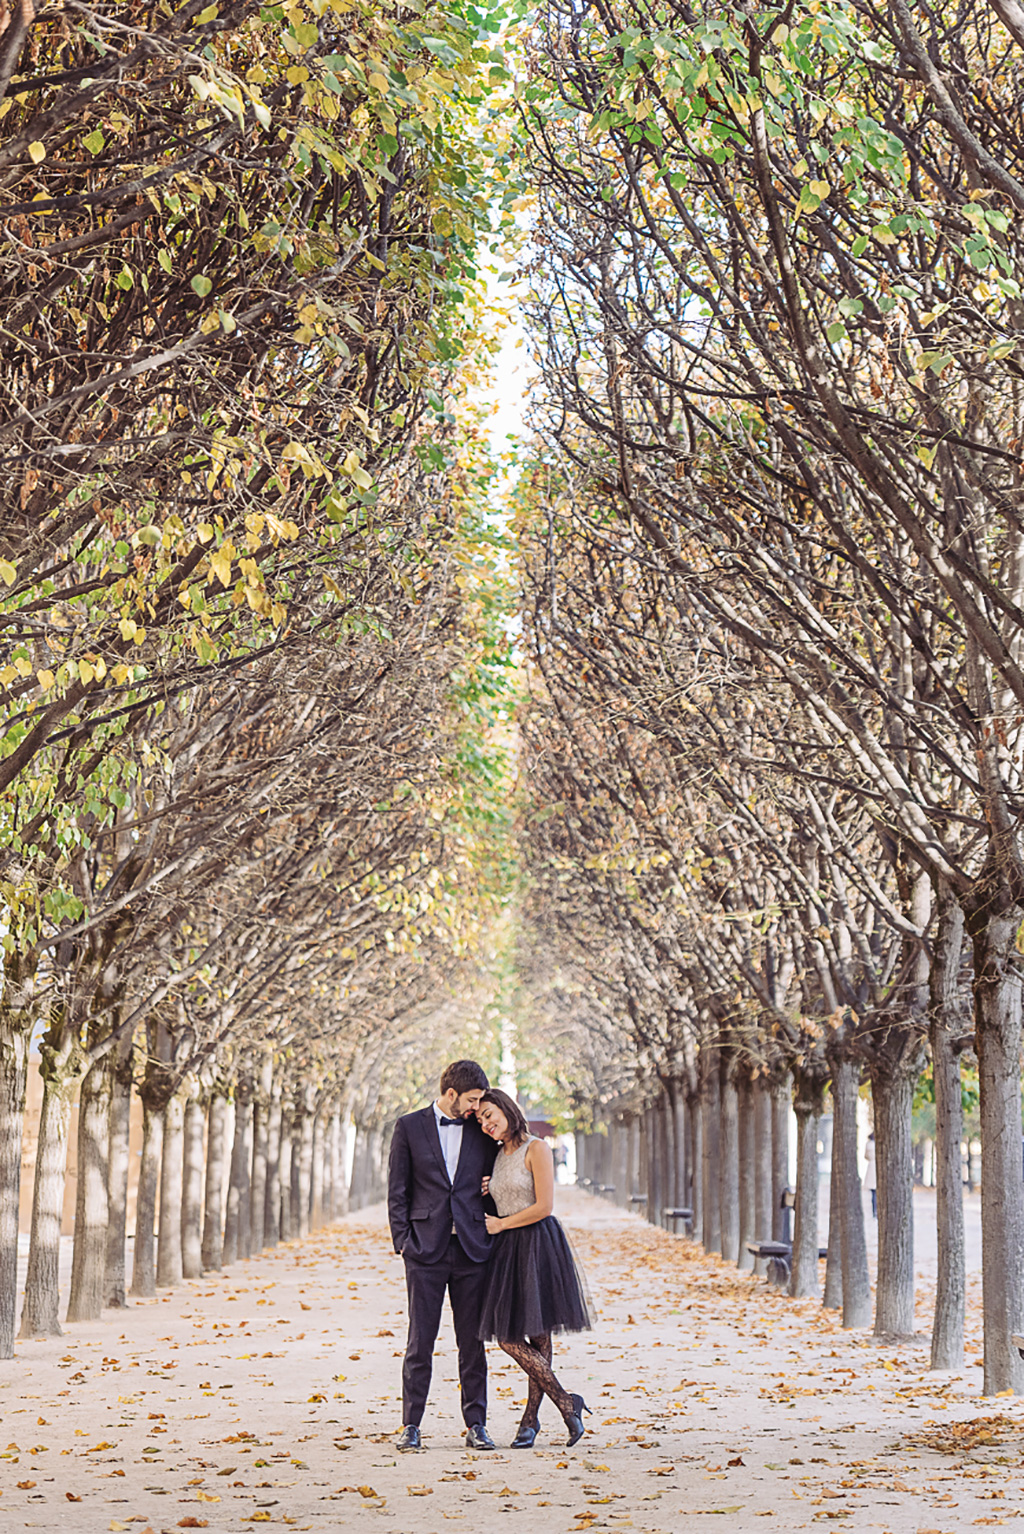 gloria-villa-paris-engagement-photographer-(29)